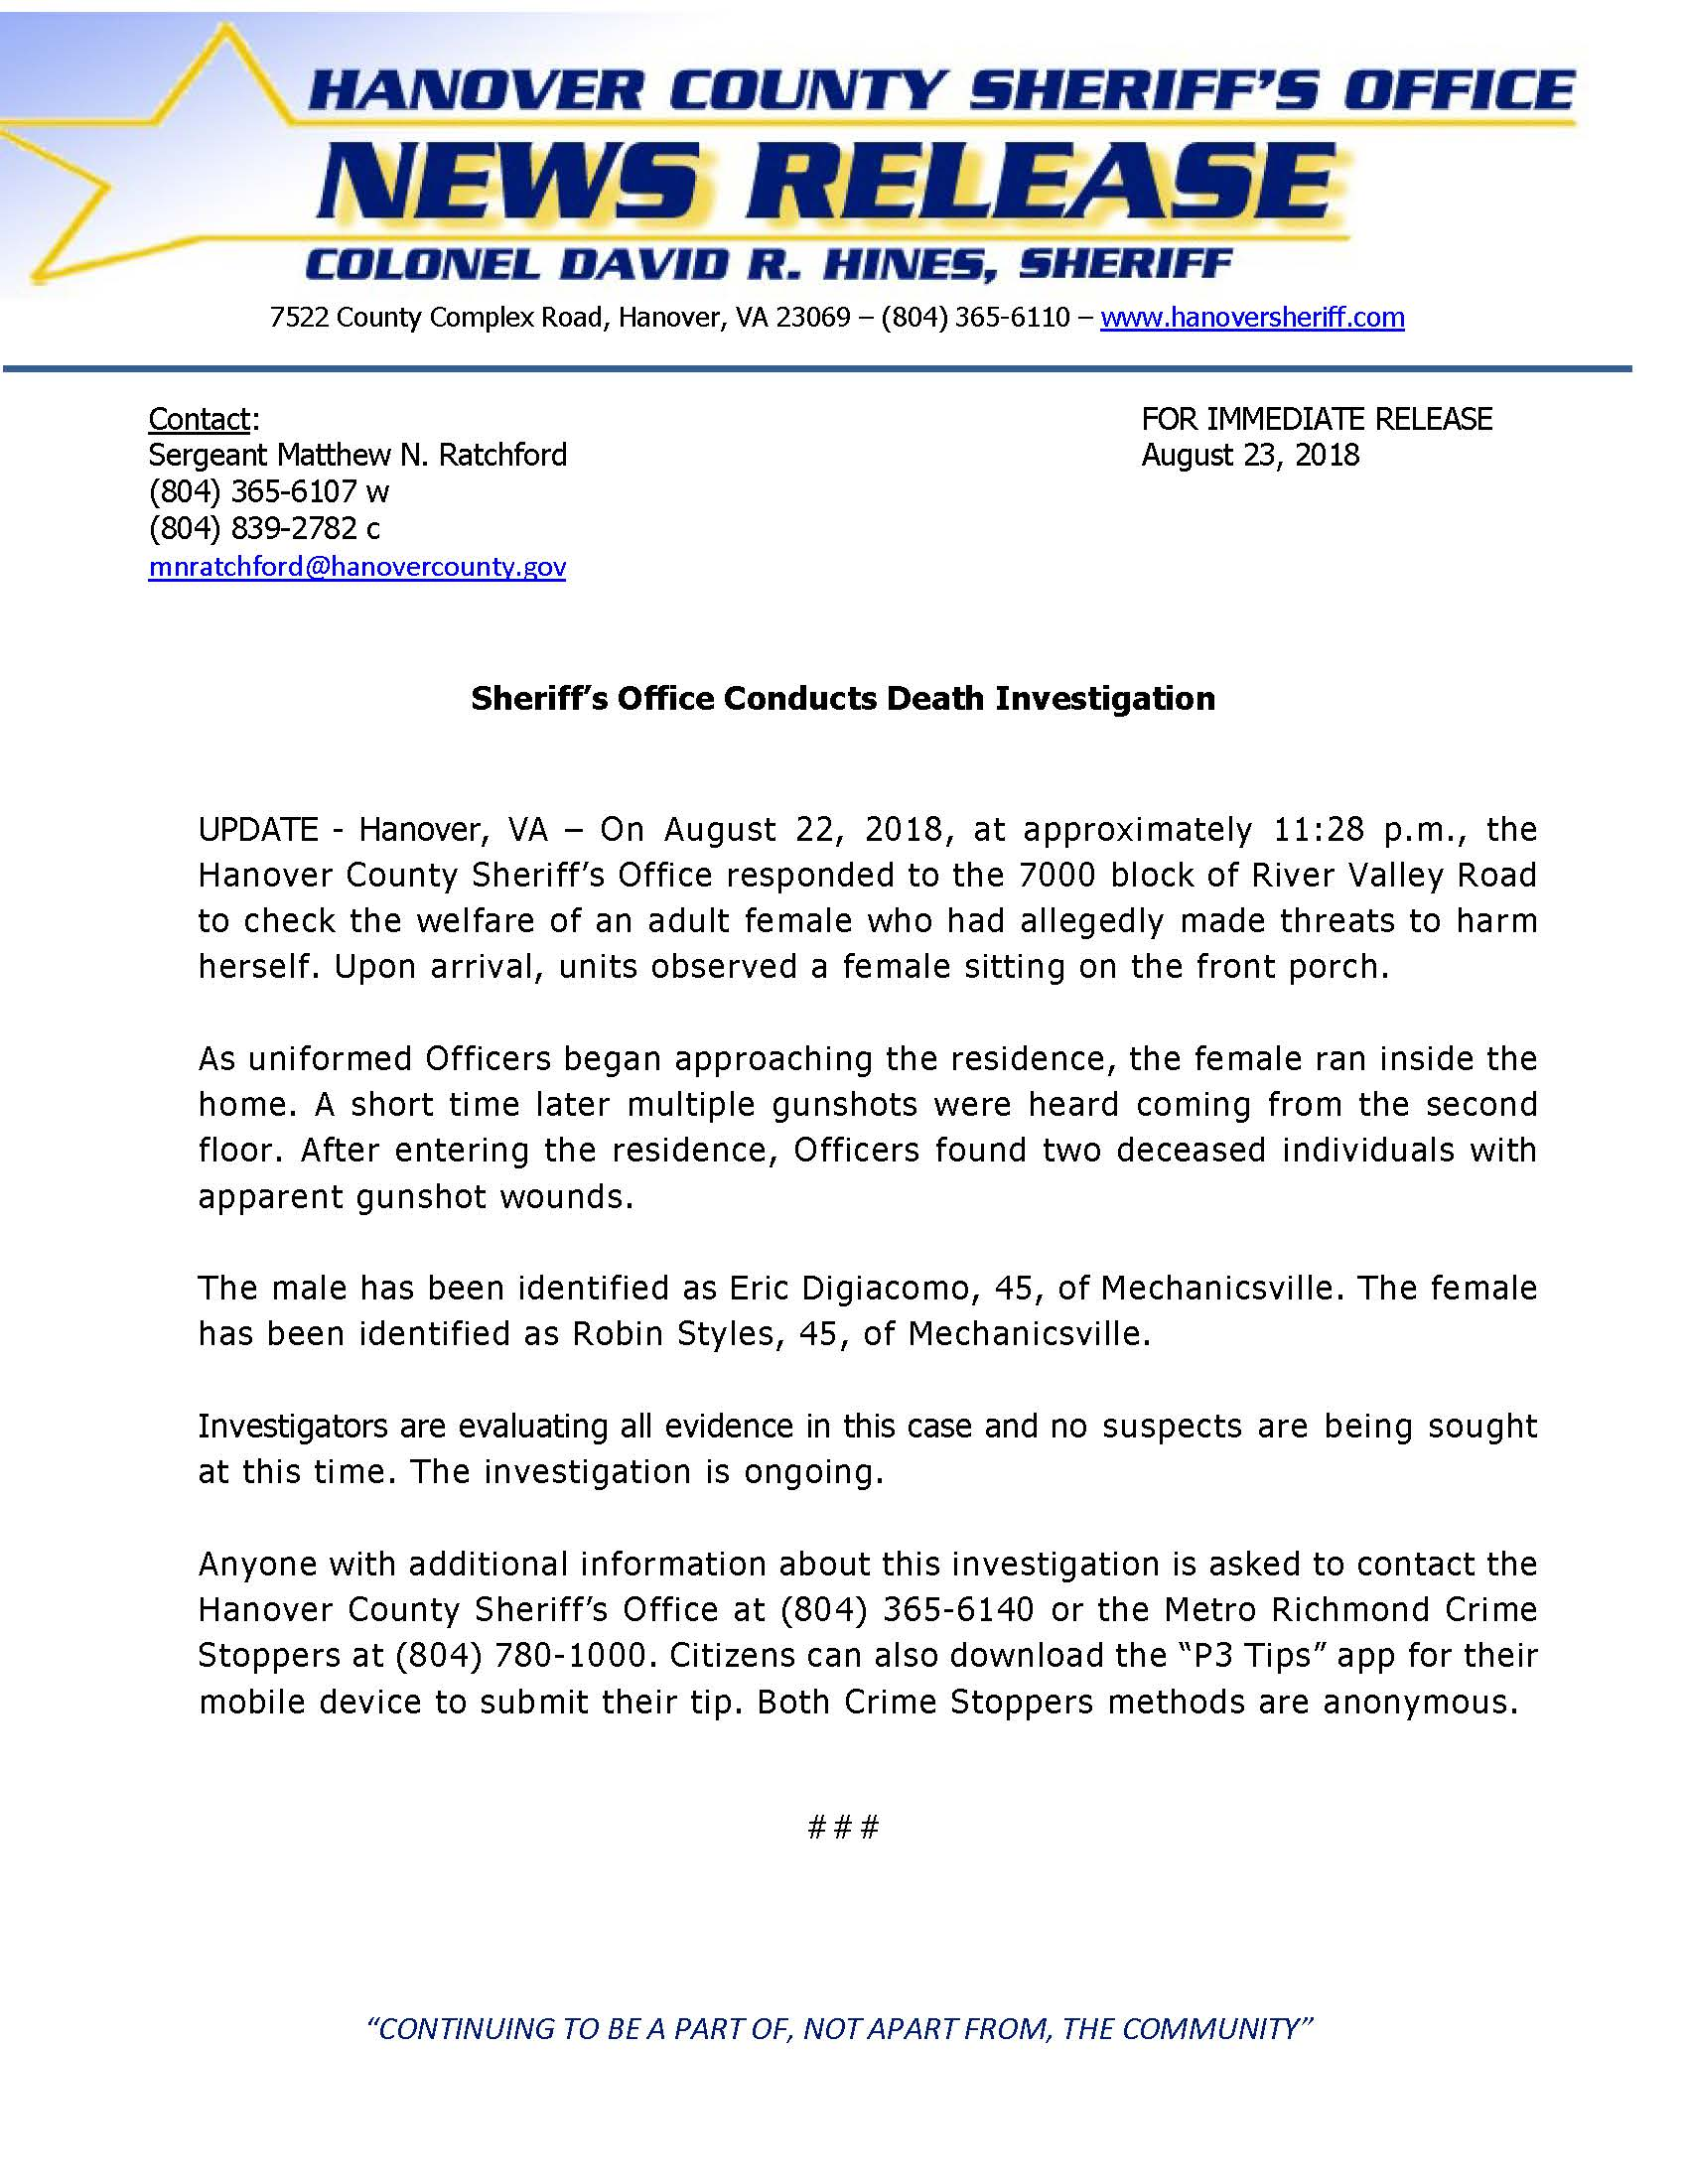 UPDATE - HCSO - Sheriffs Office Conducts Death Investigation- August 22.._